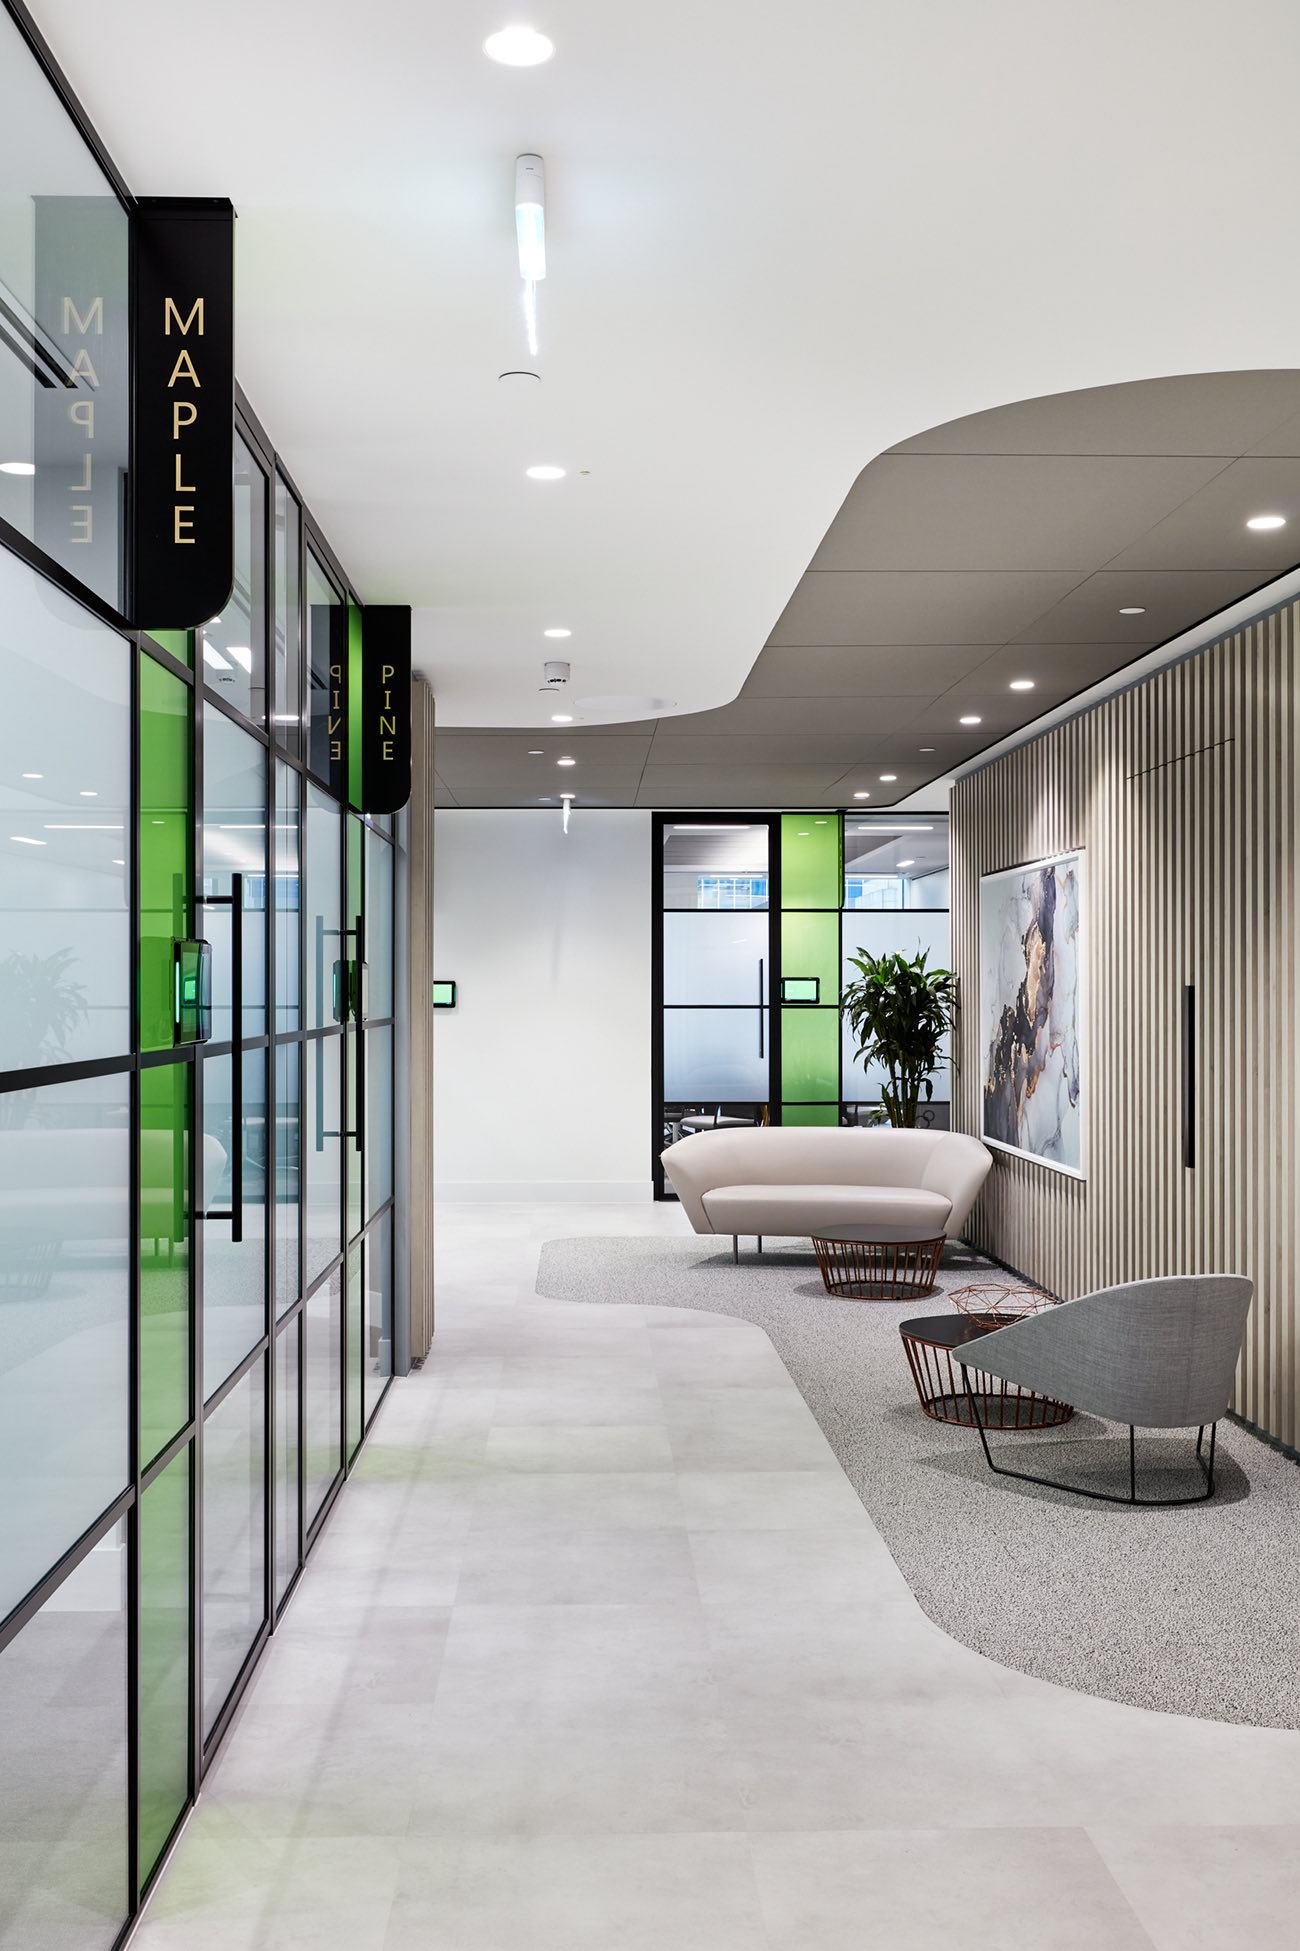 mha-london-office-7